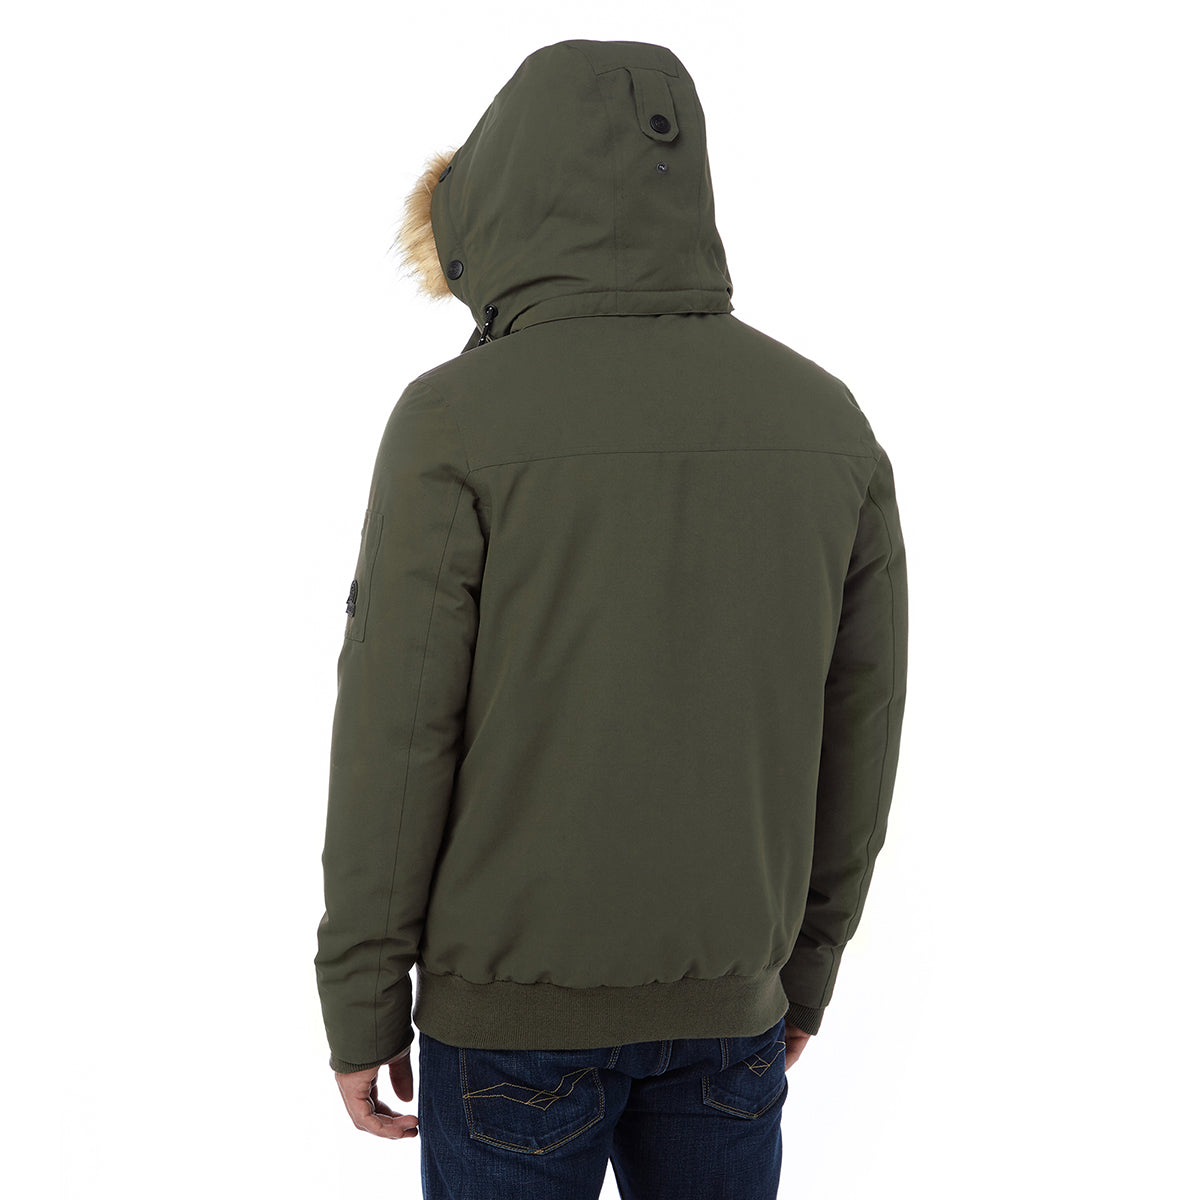 Aviation Mens Milatex/Down Jacket - Dark Khaki image 4